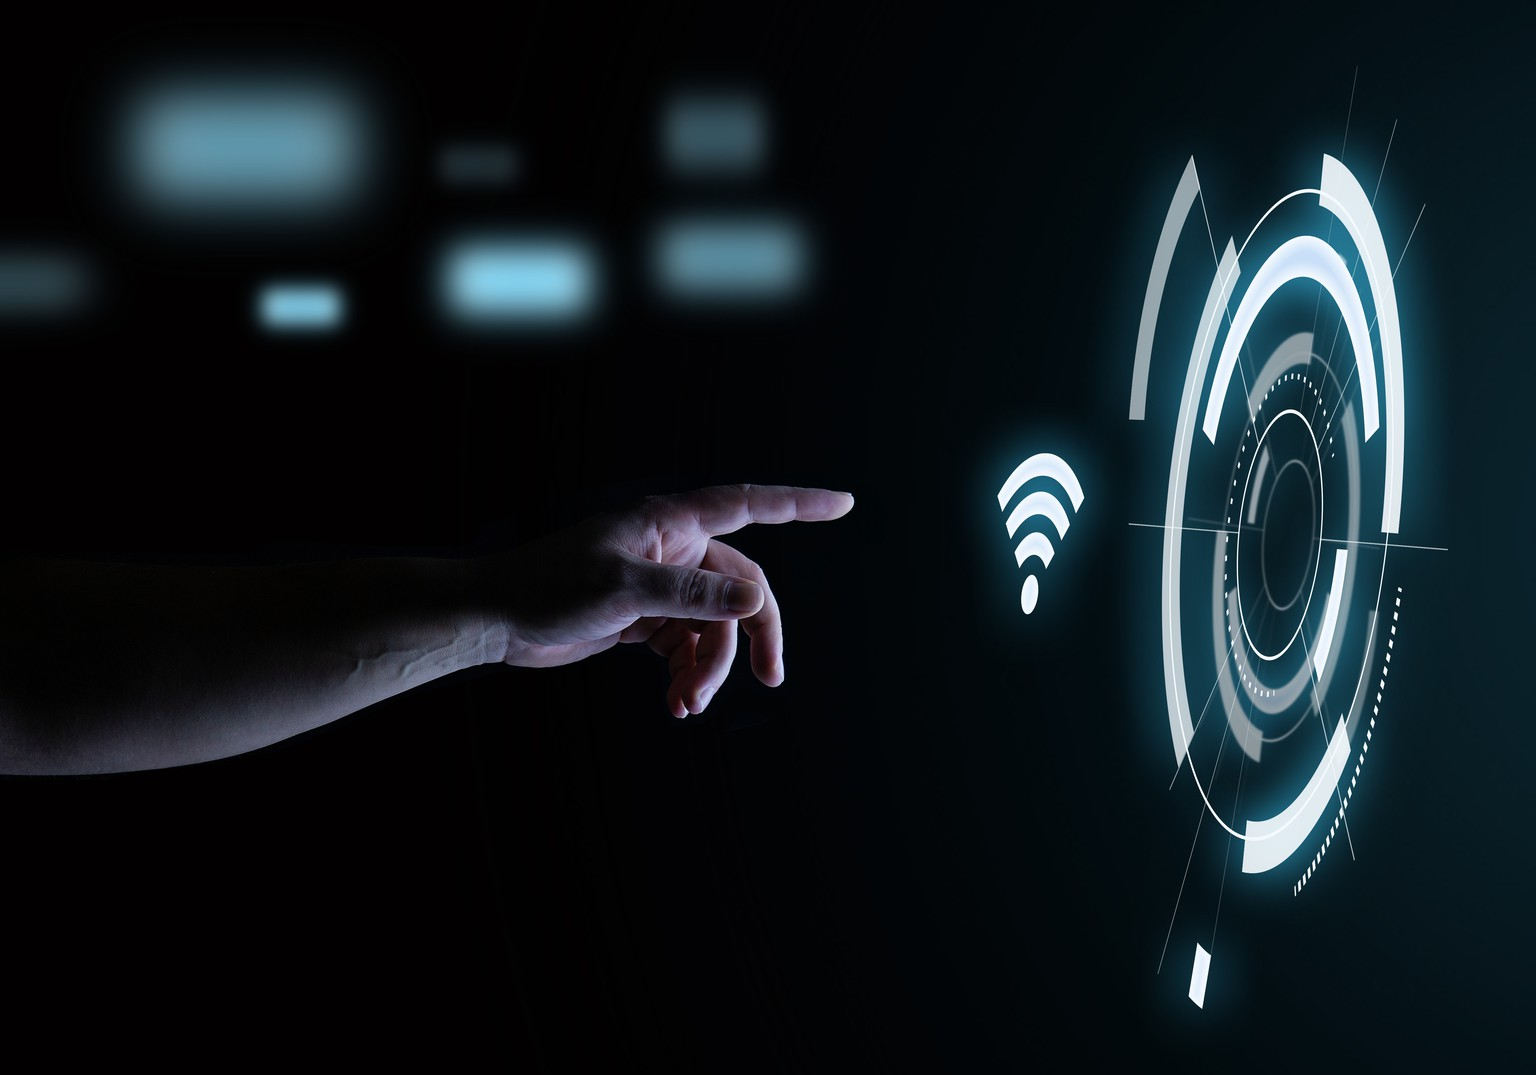 Wifi Technology Icon Digital Touch Hologram User Interface Technology Concept in the Dark